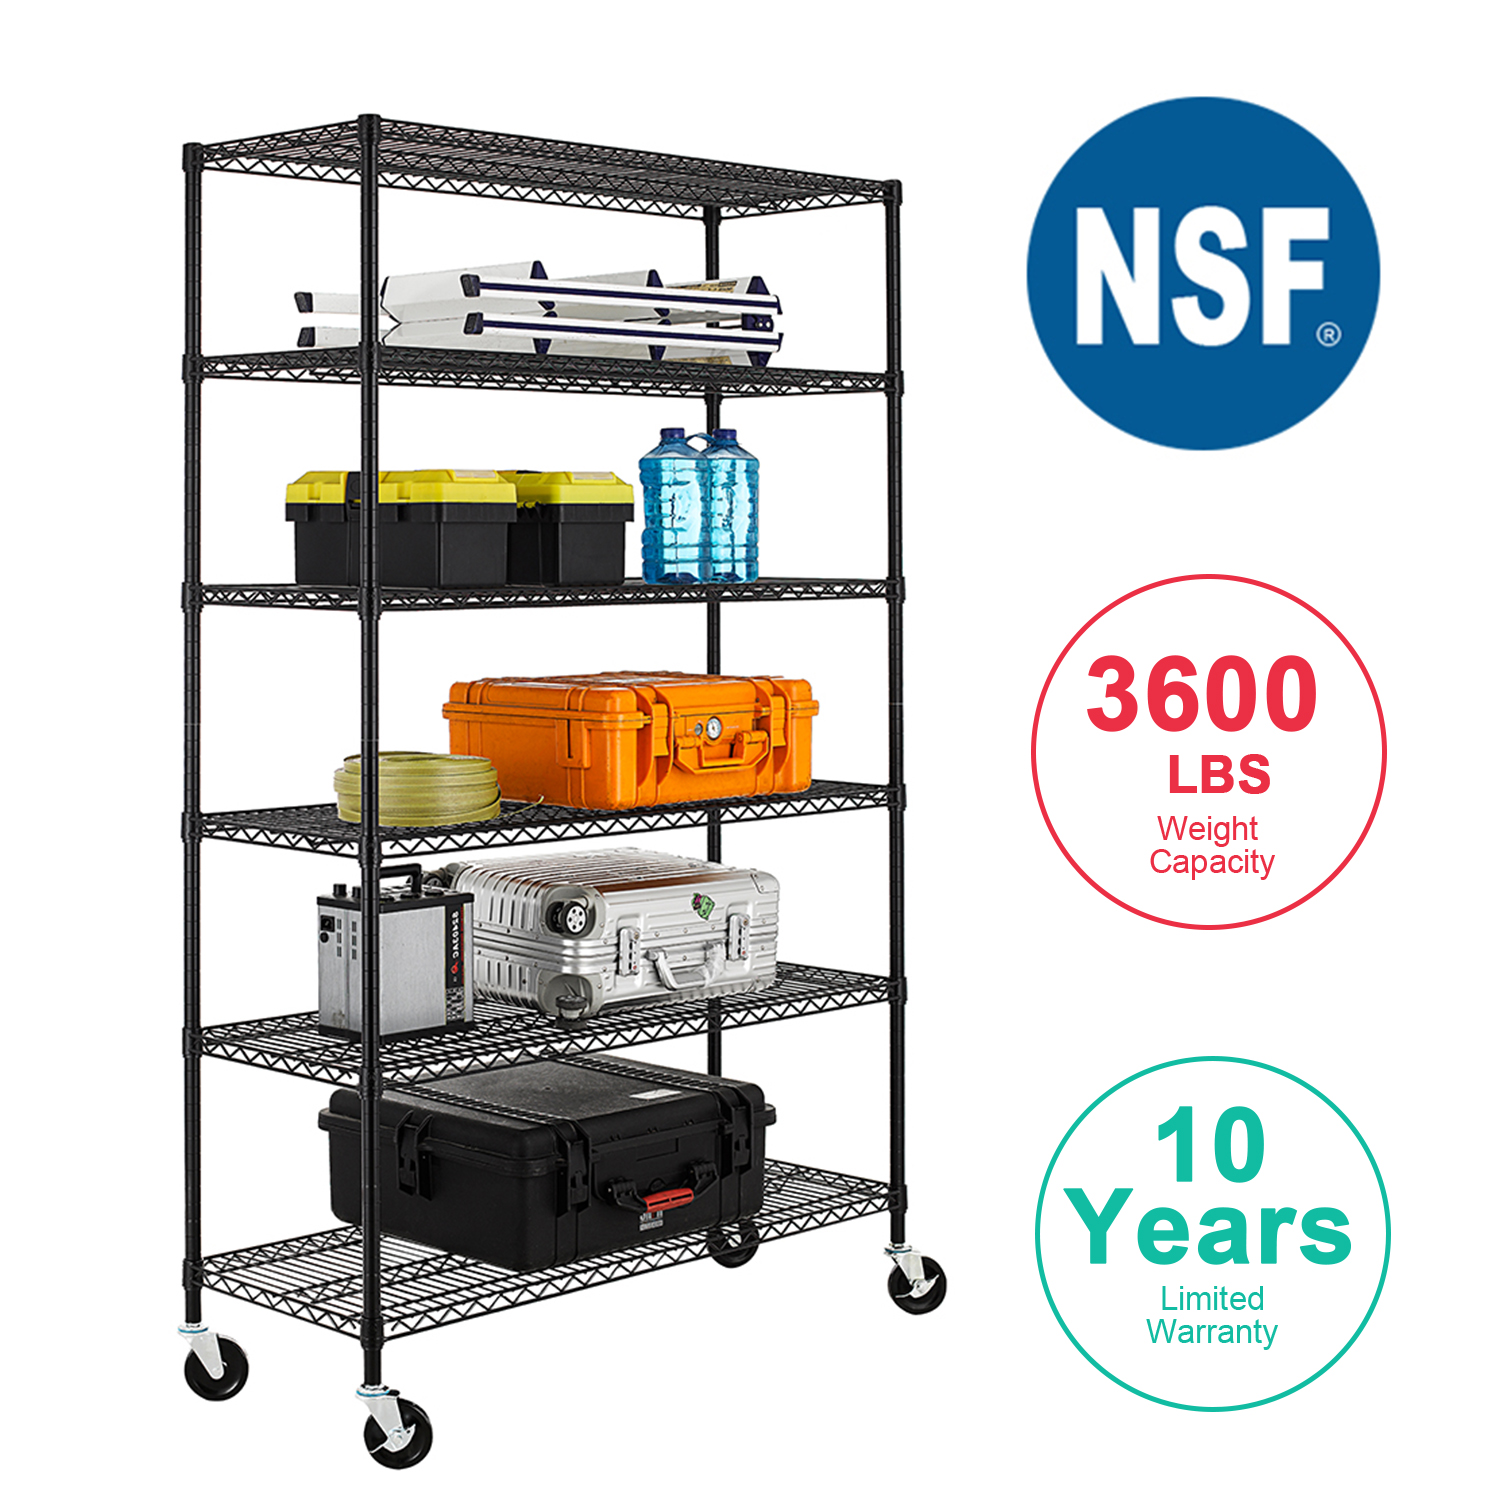 hight resolution of nsf wire shelving unit heavy duty garage storage shelves large black wiring diagram in addition metal ball caster wheel on d ball wiring